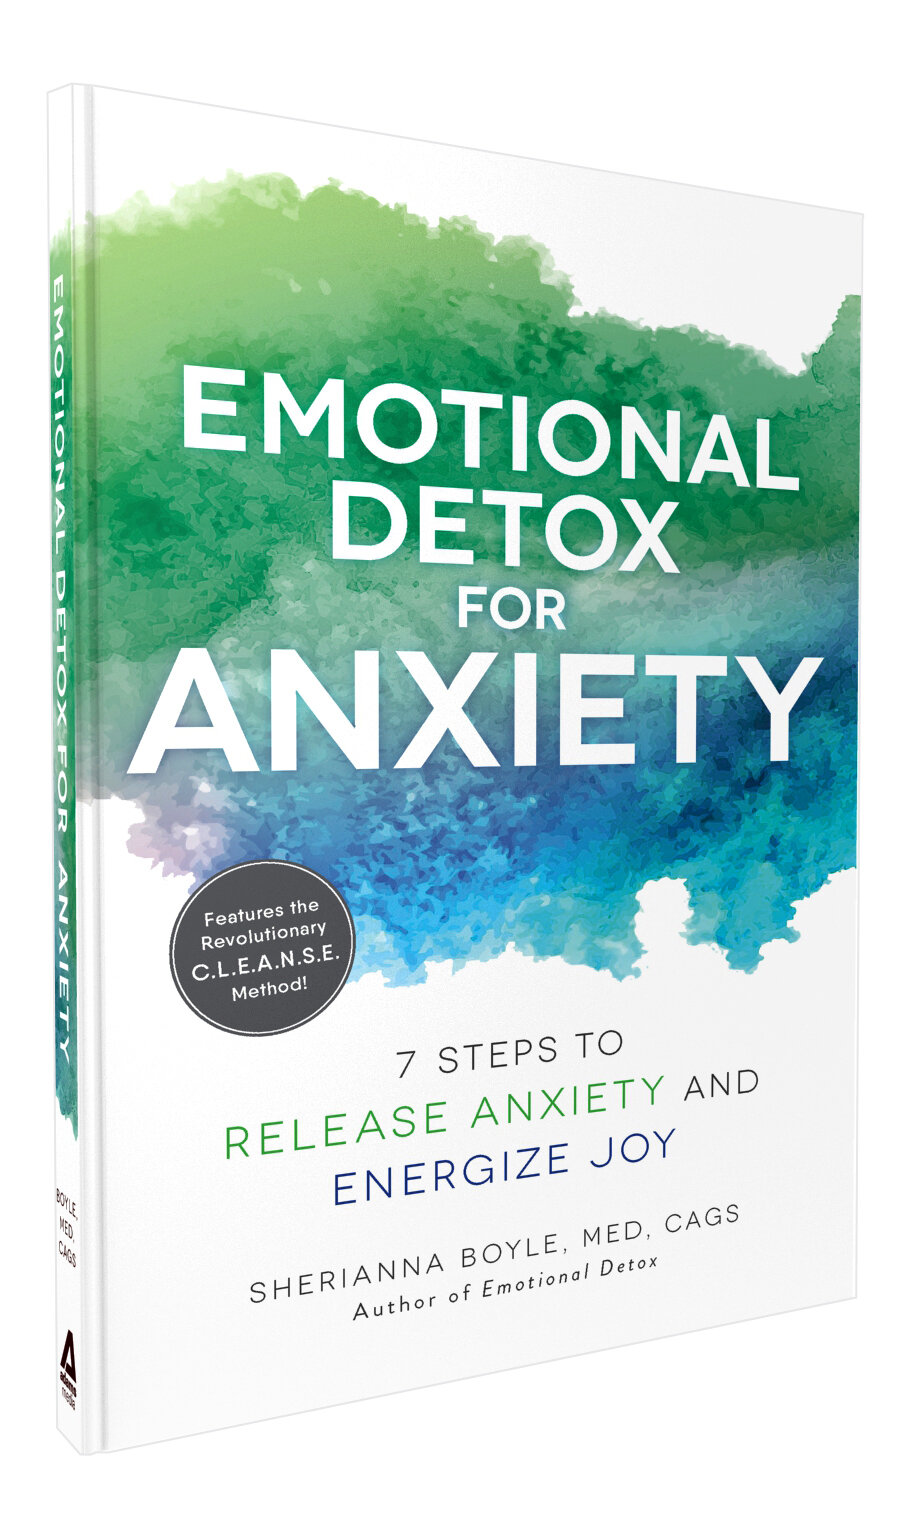 Emotional Detox for Anxiety , by Sherianna Boyle